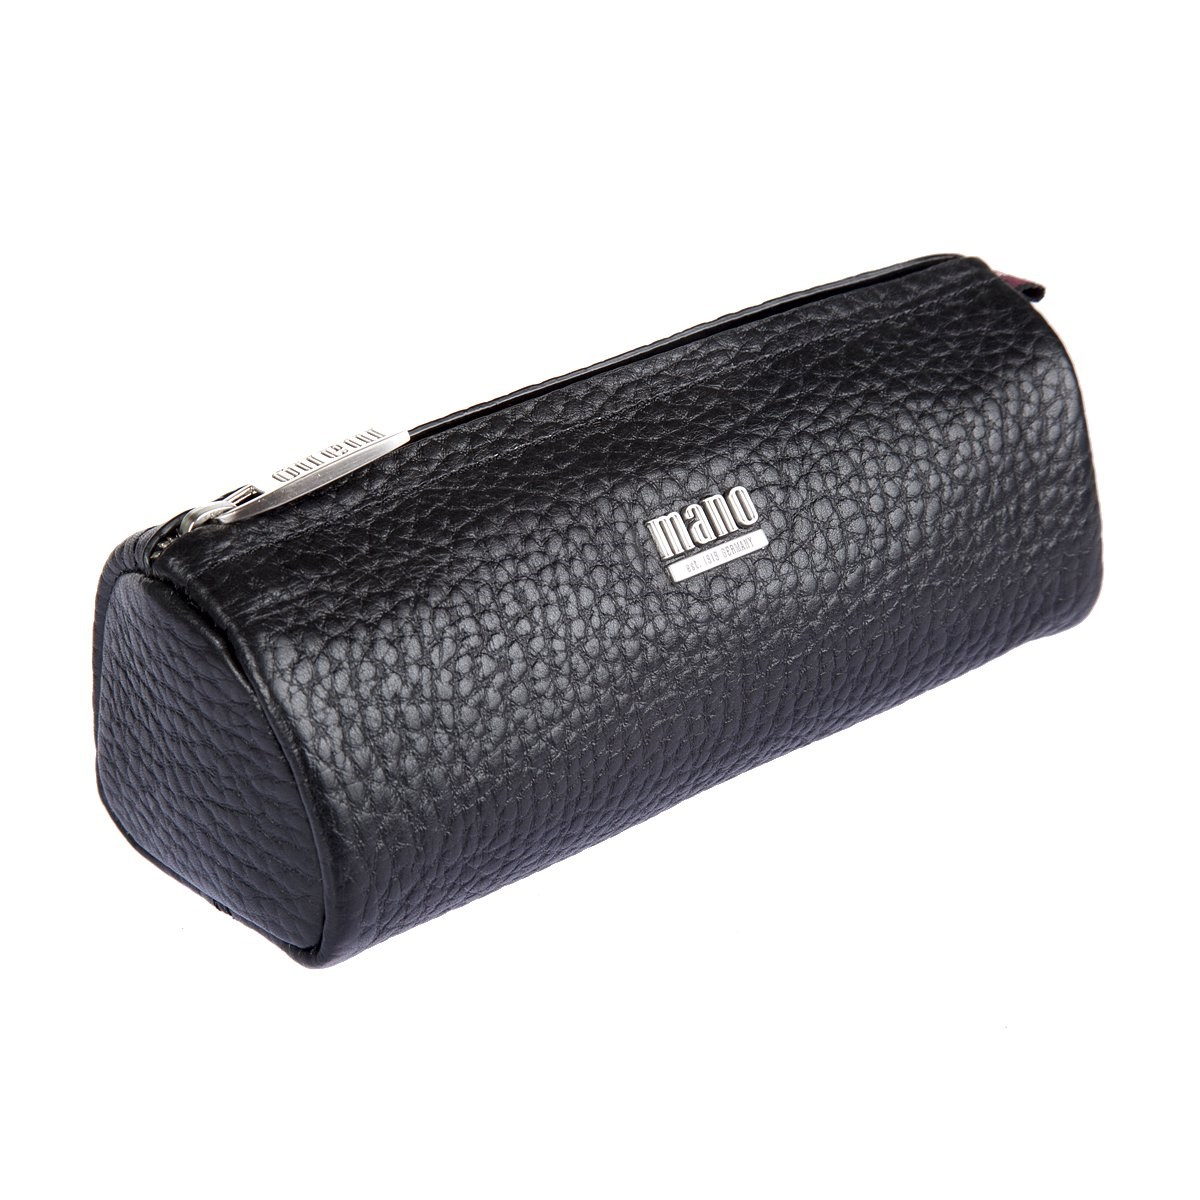 Make Up Bag Mano 19538 black portable canvas flower floral cosmetic bag travel toiletry wash makeup storage bags organizer make up case for women